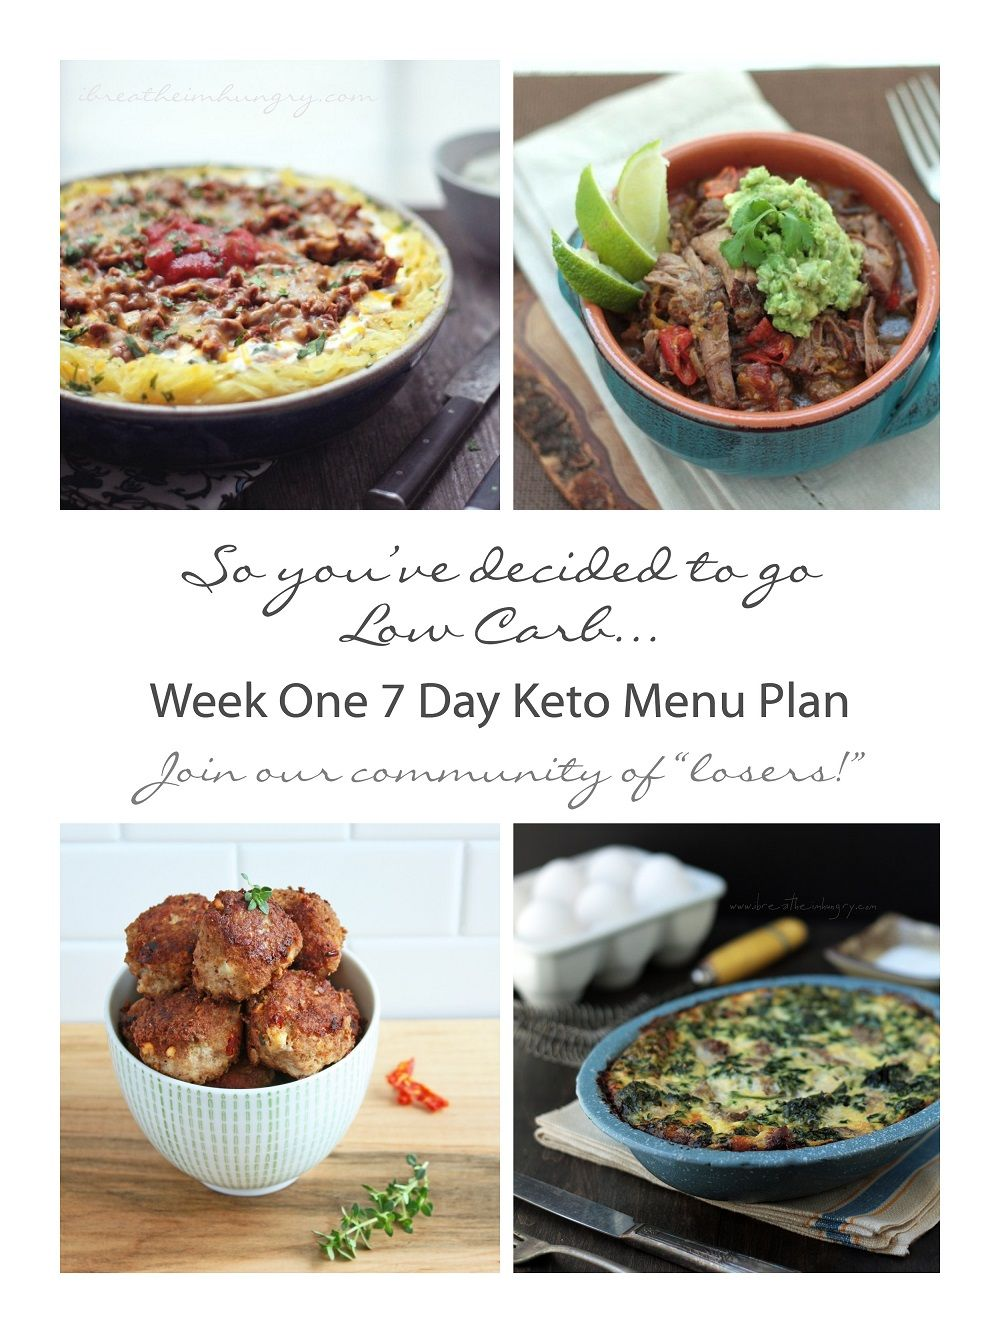 Week One Keto/Low Carb 7 Day Menu Plan and Progress Report! Join us ...